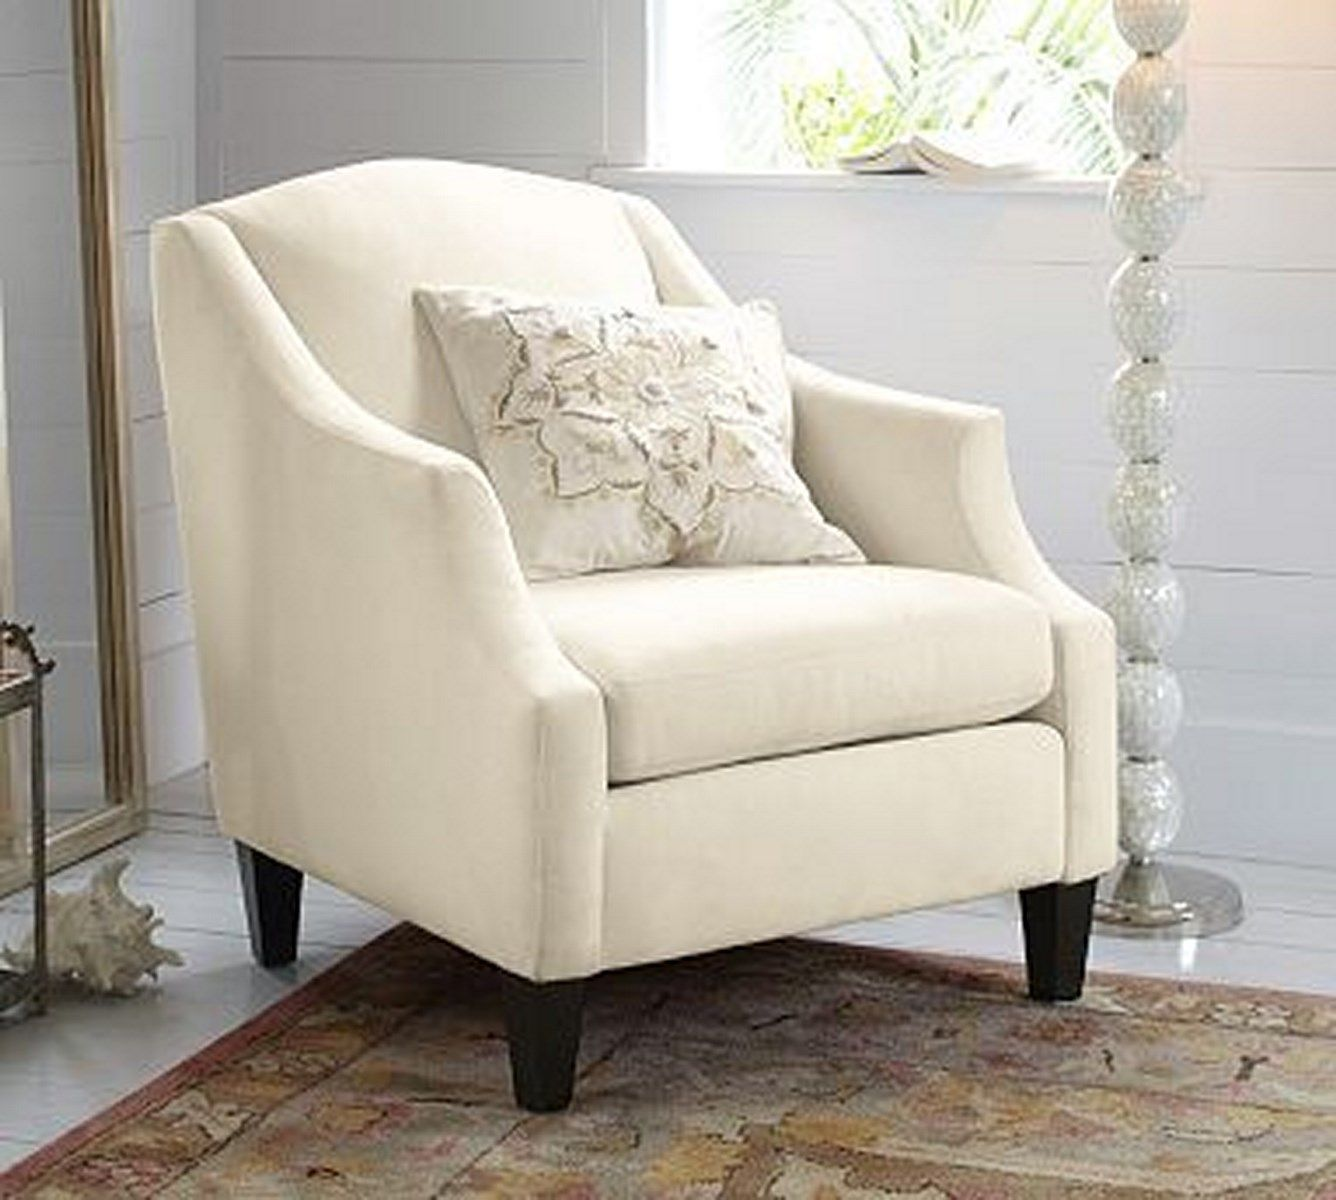 Bradshaw White Bedroom Armchair | White bedroom chair ...